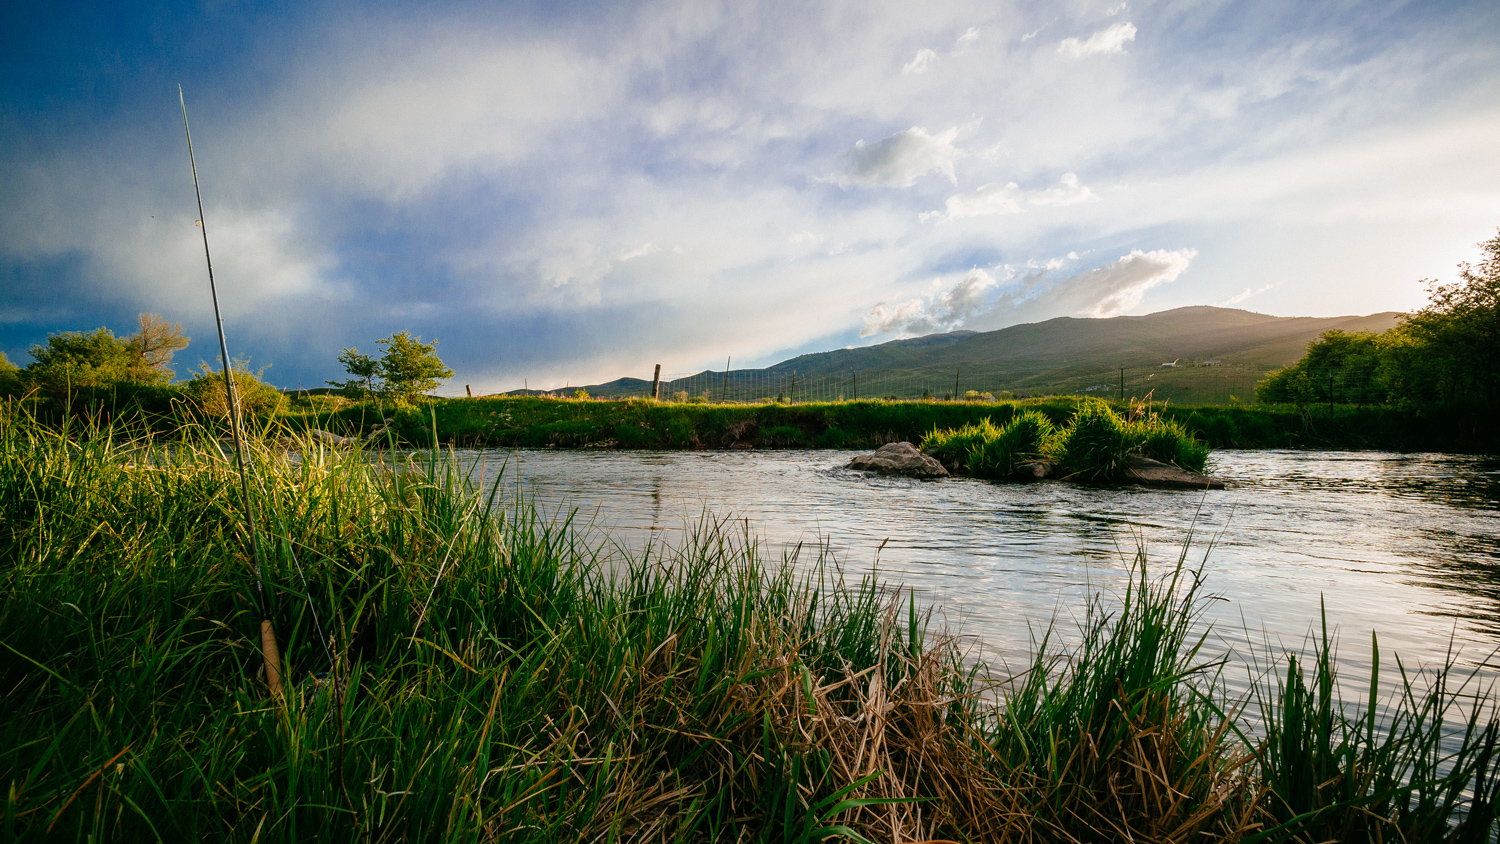 Fly fishing on the Weber River in Park City, Utah